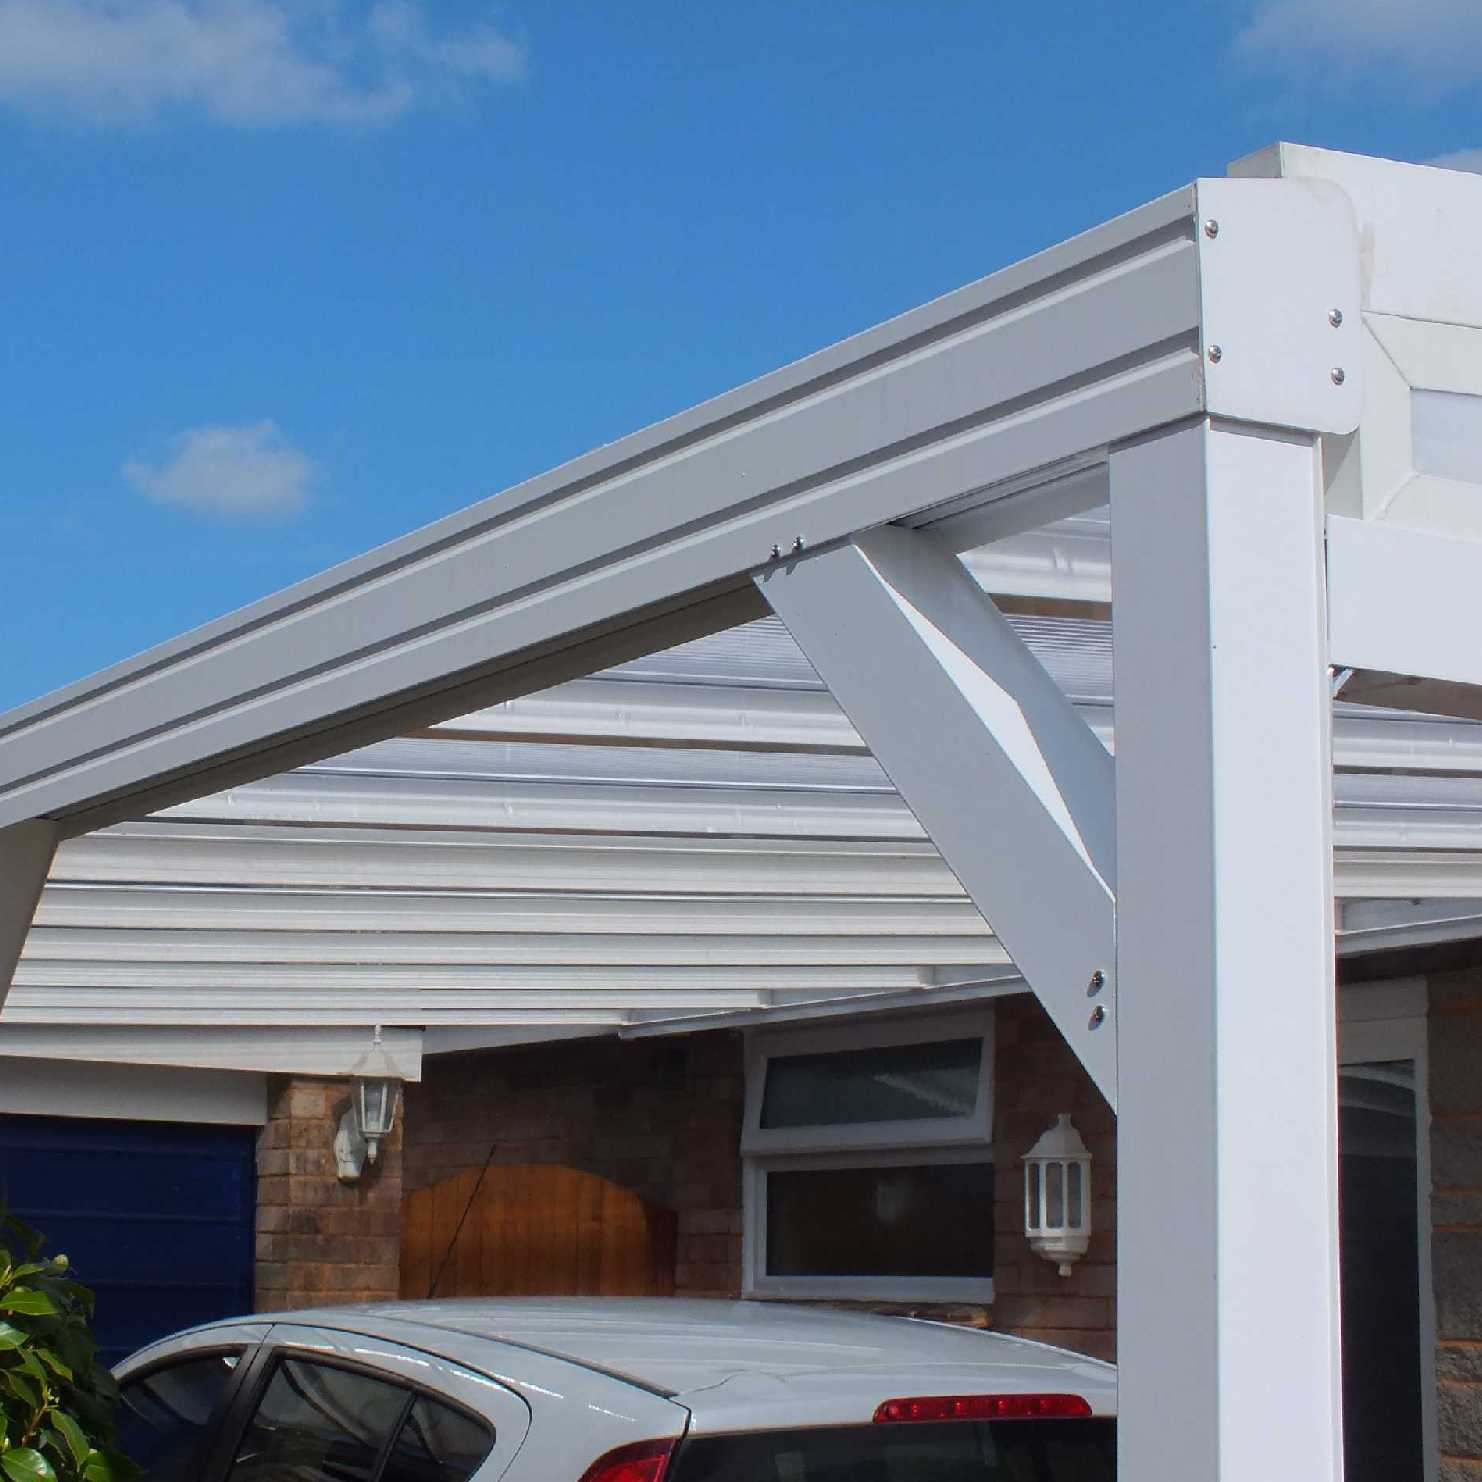 Buy Omega Smart White Lean-To Canopy with 16mm Polycarbonate Glazing - 11.4m (W) x 3.5m (P), (5) Supporting Posts online today